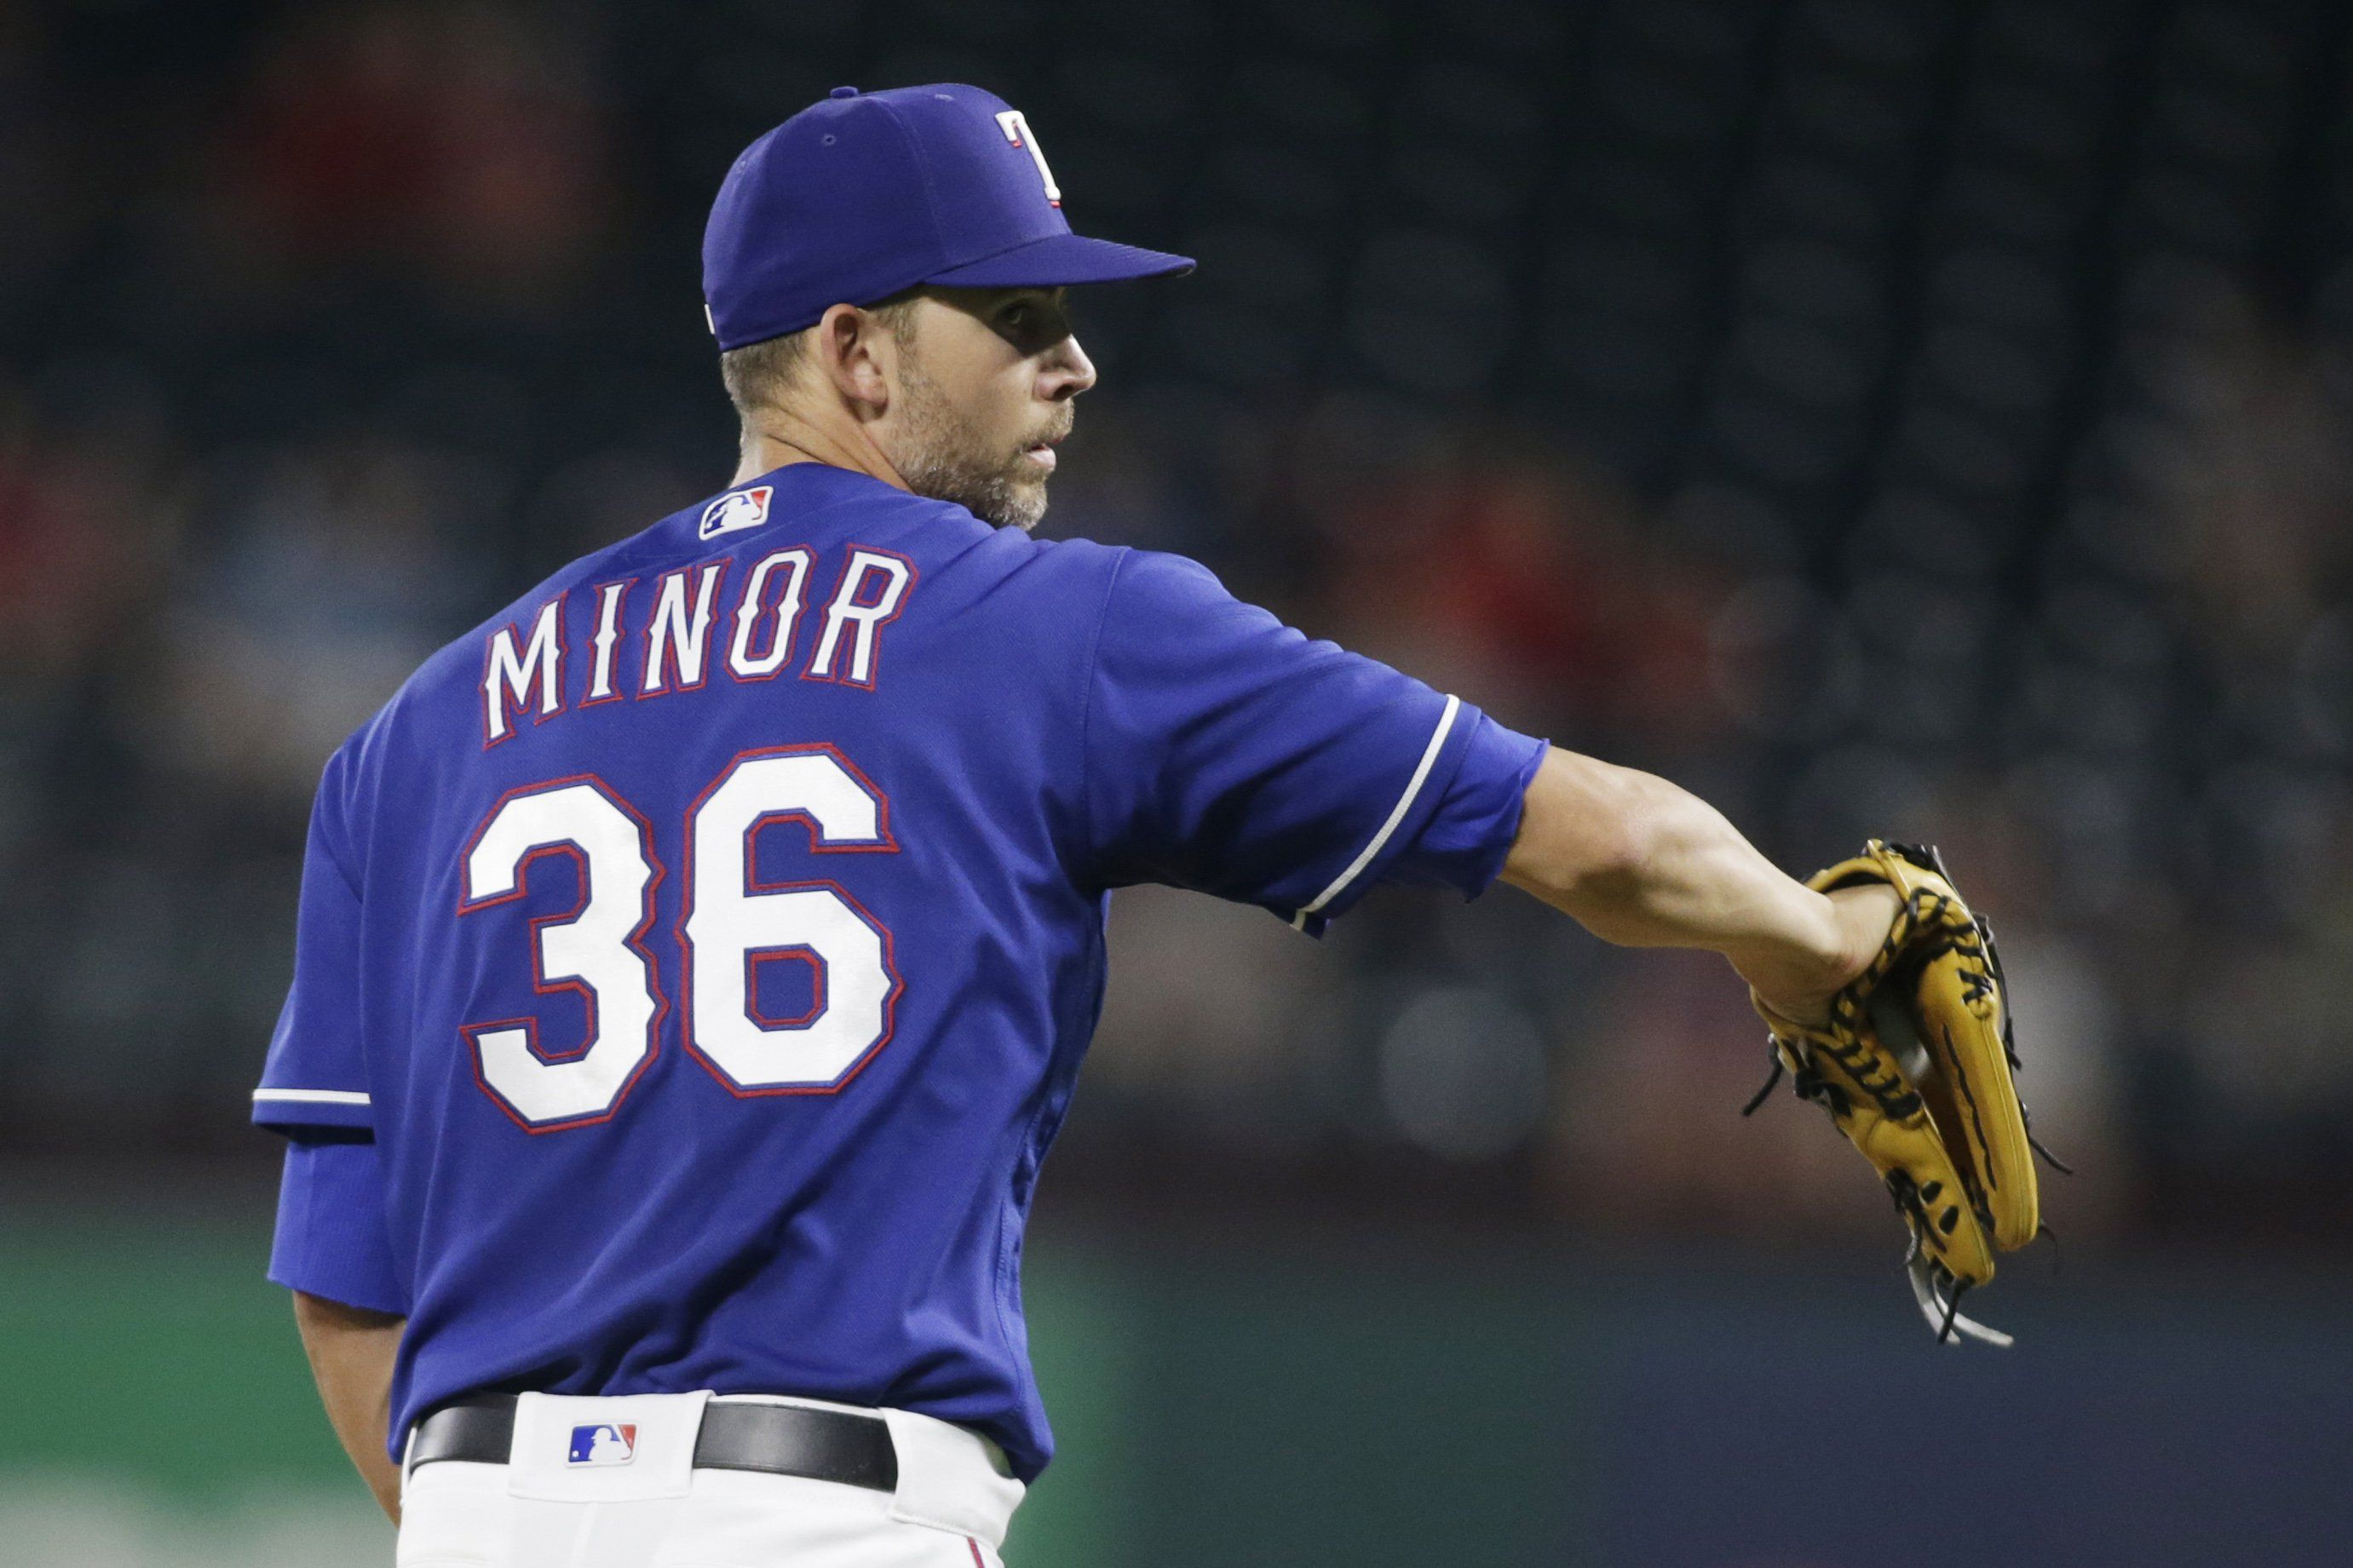 Mlb Trade Rumors Free Agency Deals For Mike Minor Marcus Stroman Trevor Bauer Madison Bumgarer And Matthew Boyd Trevor Bauer Mlb Madison Bumgarner